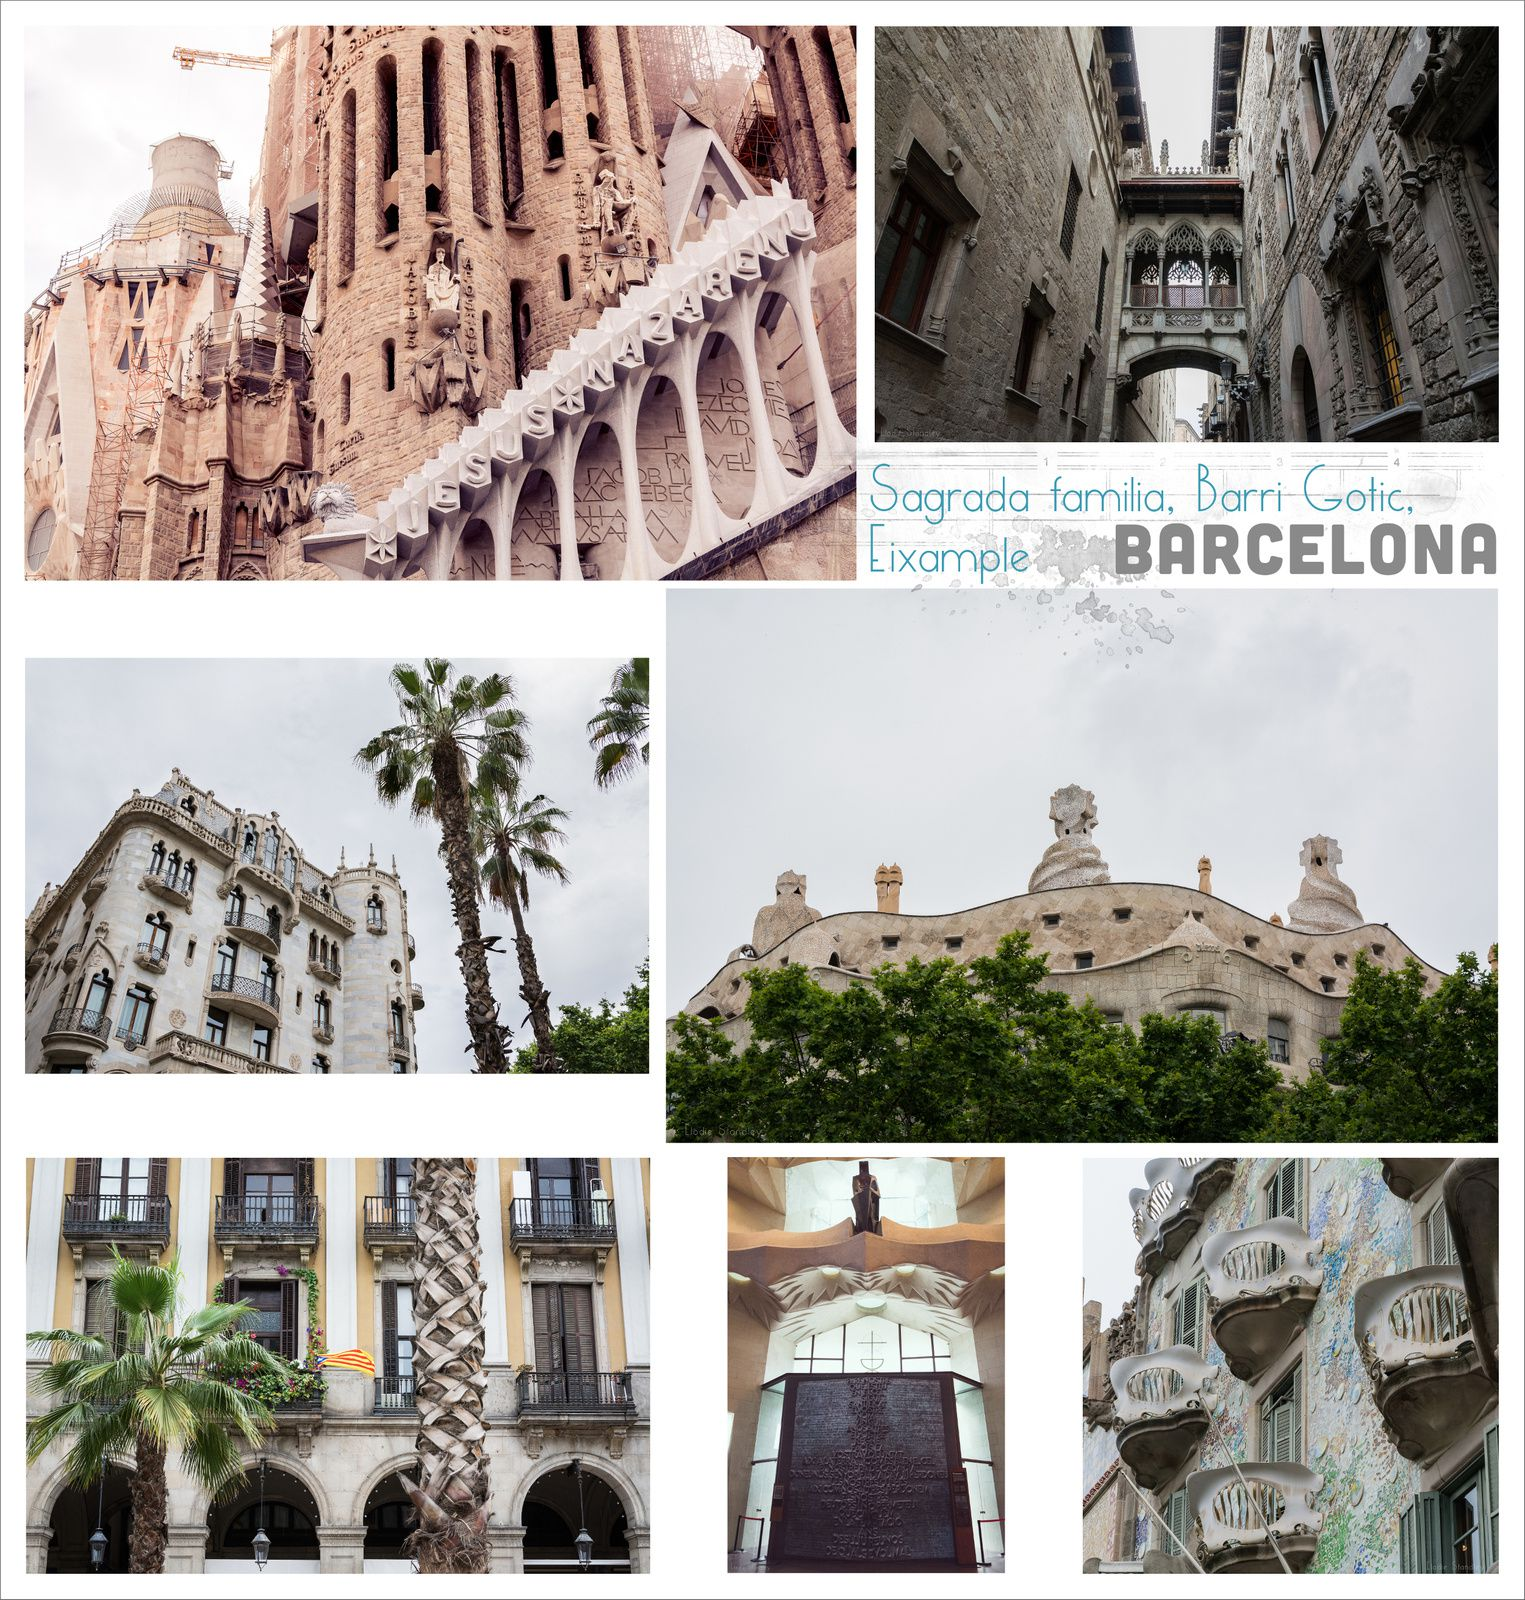 Photos Barcelone et Album Monument Valley